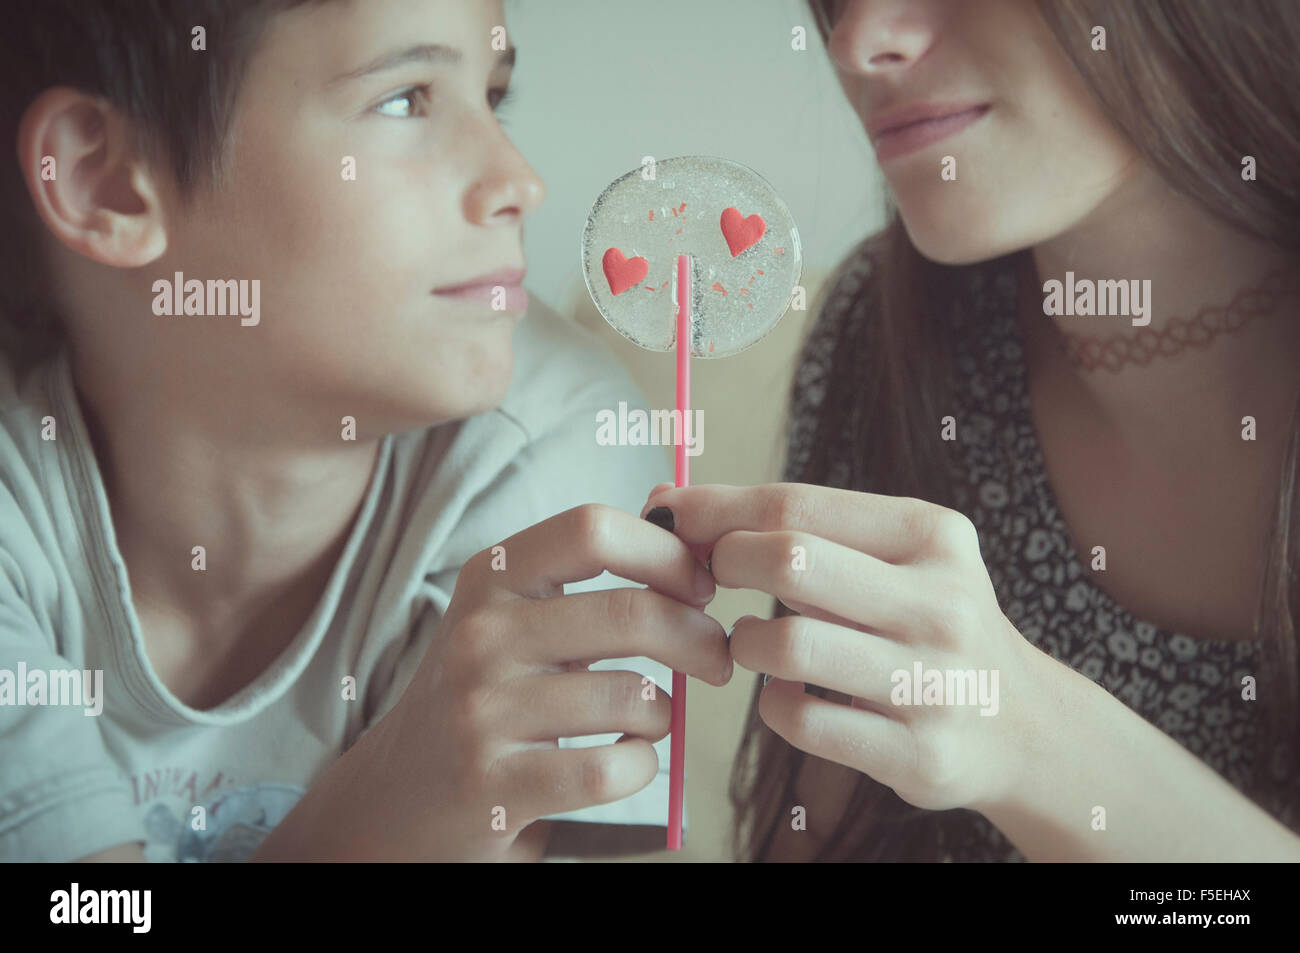 Boy and girl holding valentine day's lollipop Photo Stock